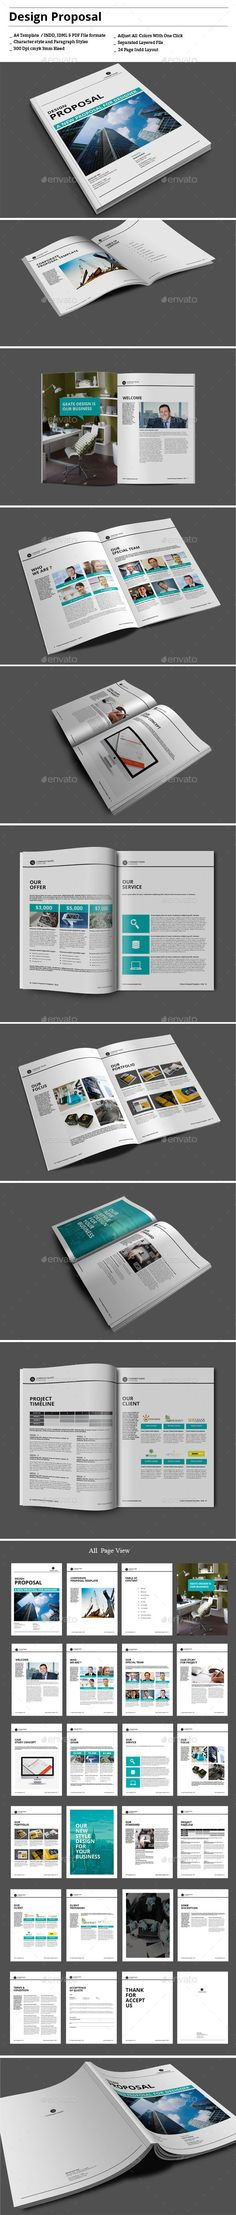 Design Proposal by This Product Now in Bundle size Proposalcolor swatches for simple color editing through whole documentimages, text a Business Proposal Template, Proposal Templates, Invoice Design, Brochure Design, Print Layout, Web Layout, Graphic Design Print, Ad Design, Proposal Writing